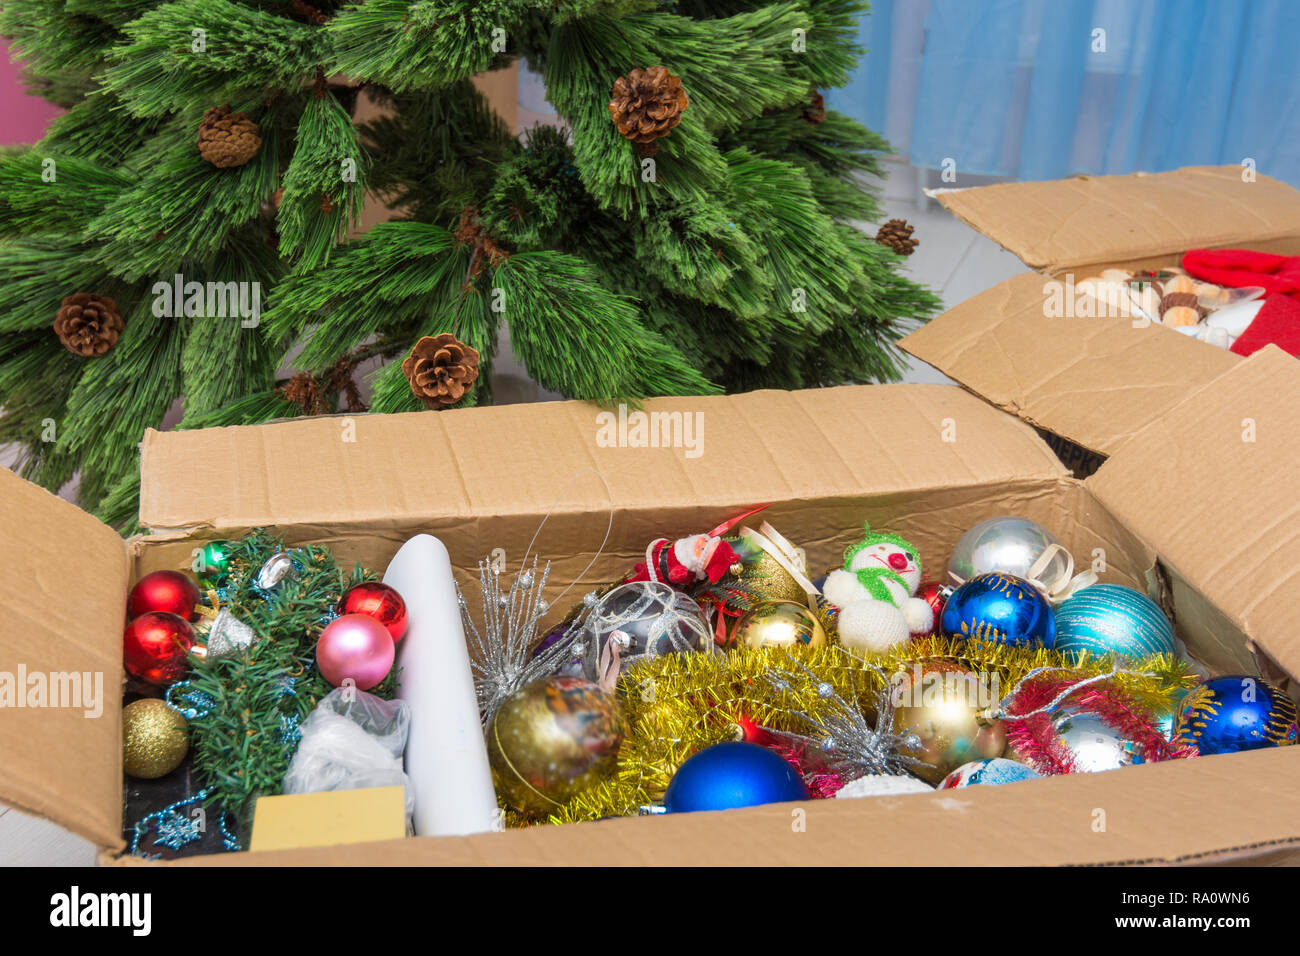 Artificial Christmas Tree Box.Christmas Tree Decorations In A Box In Front Of An